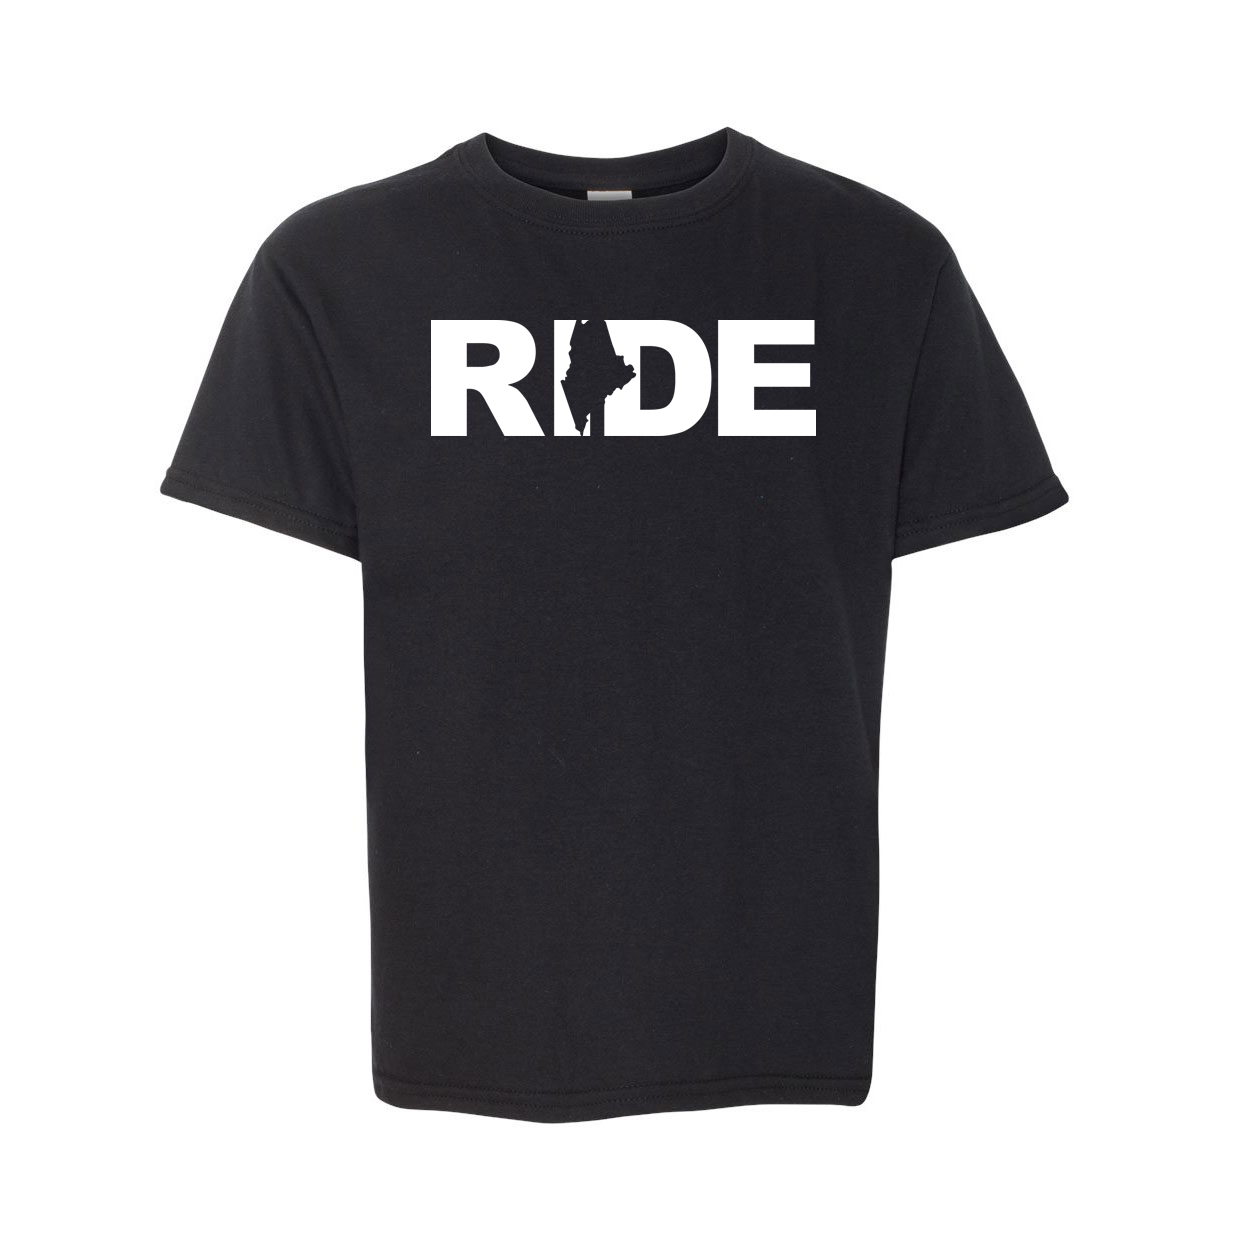 Ride Maine Classic Youth T-Shirt Black (White Logo)